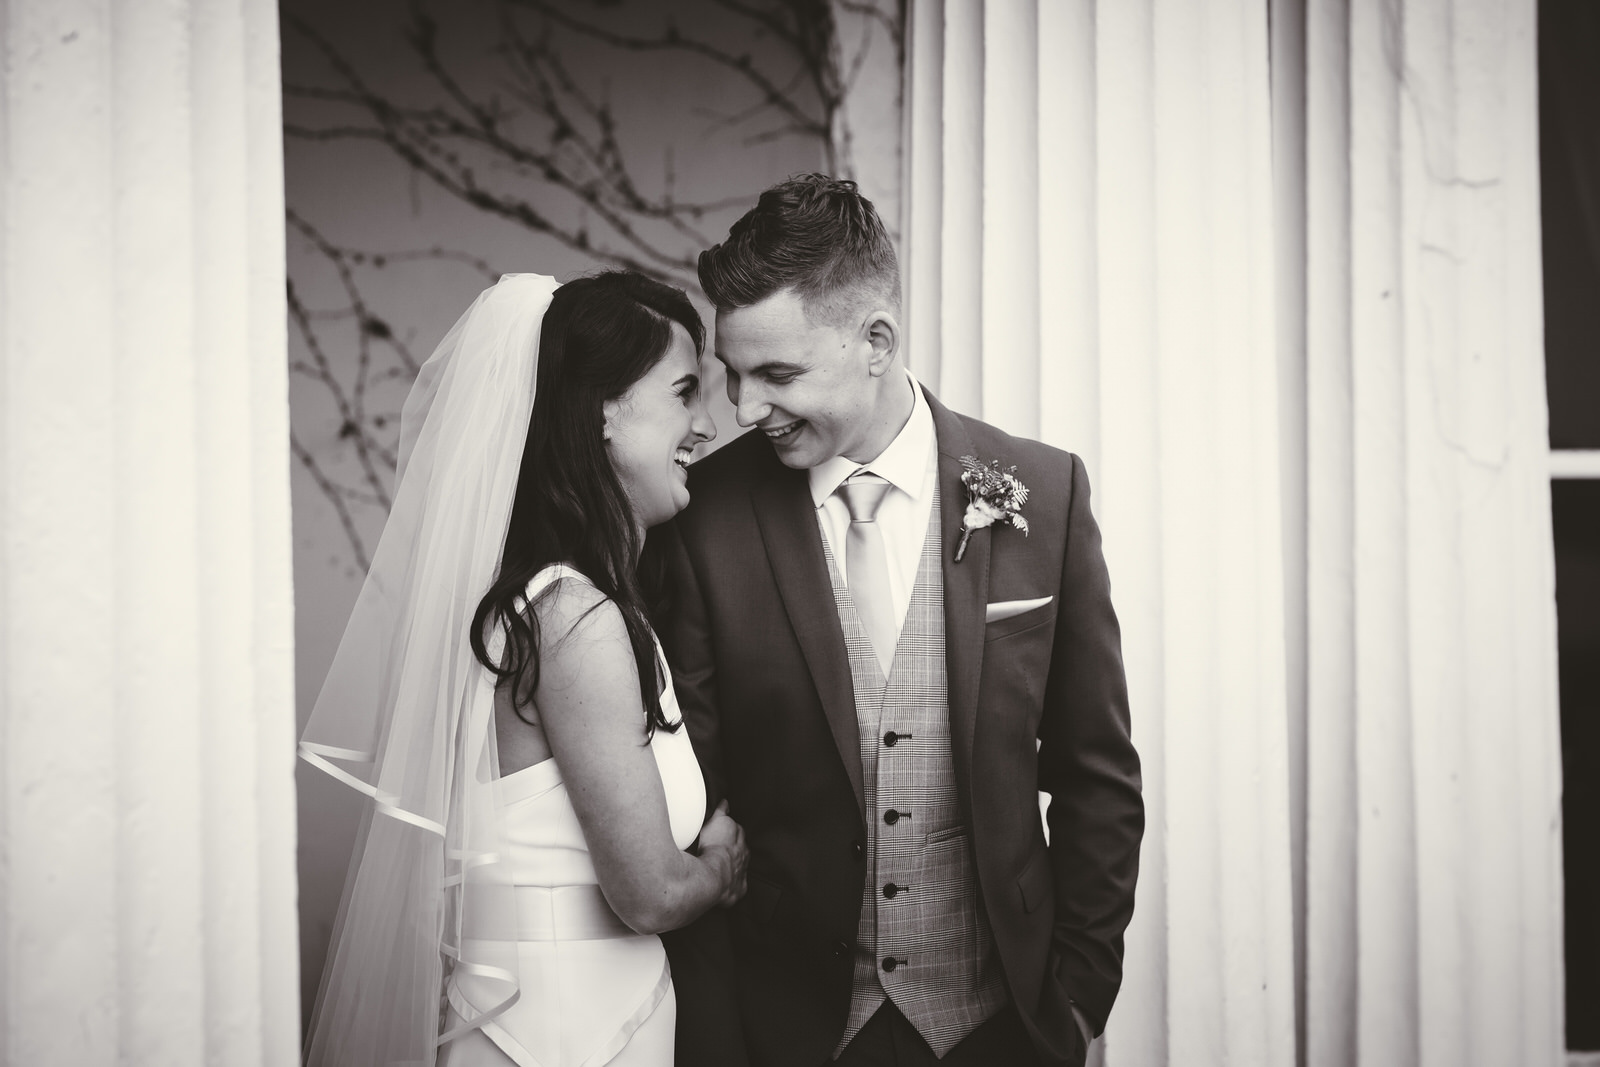 A shared happy moment between the bride and groom in black and white